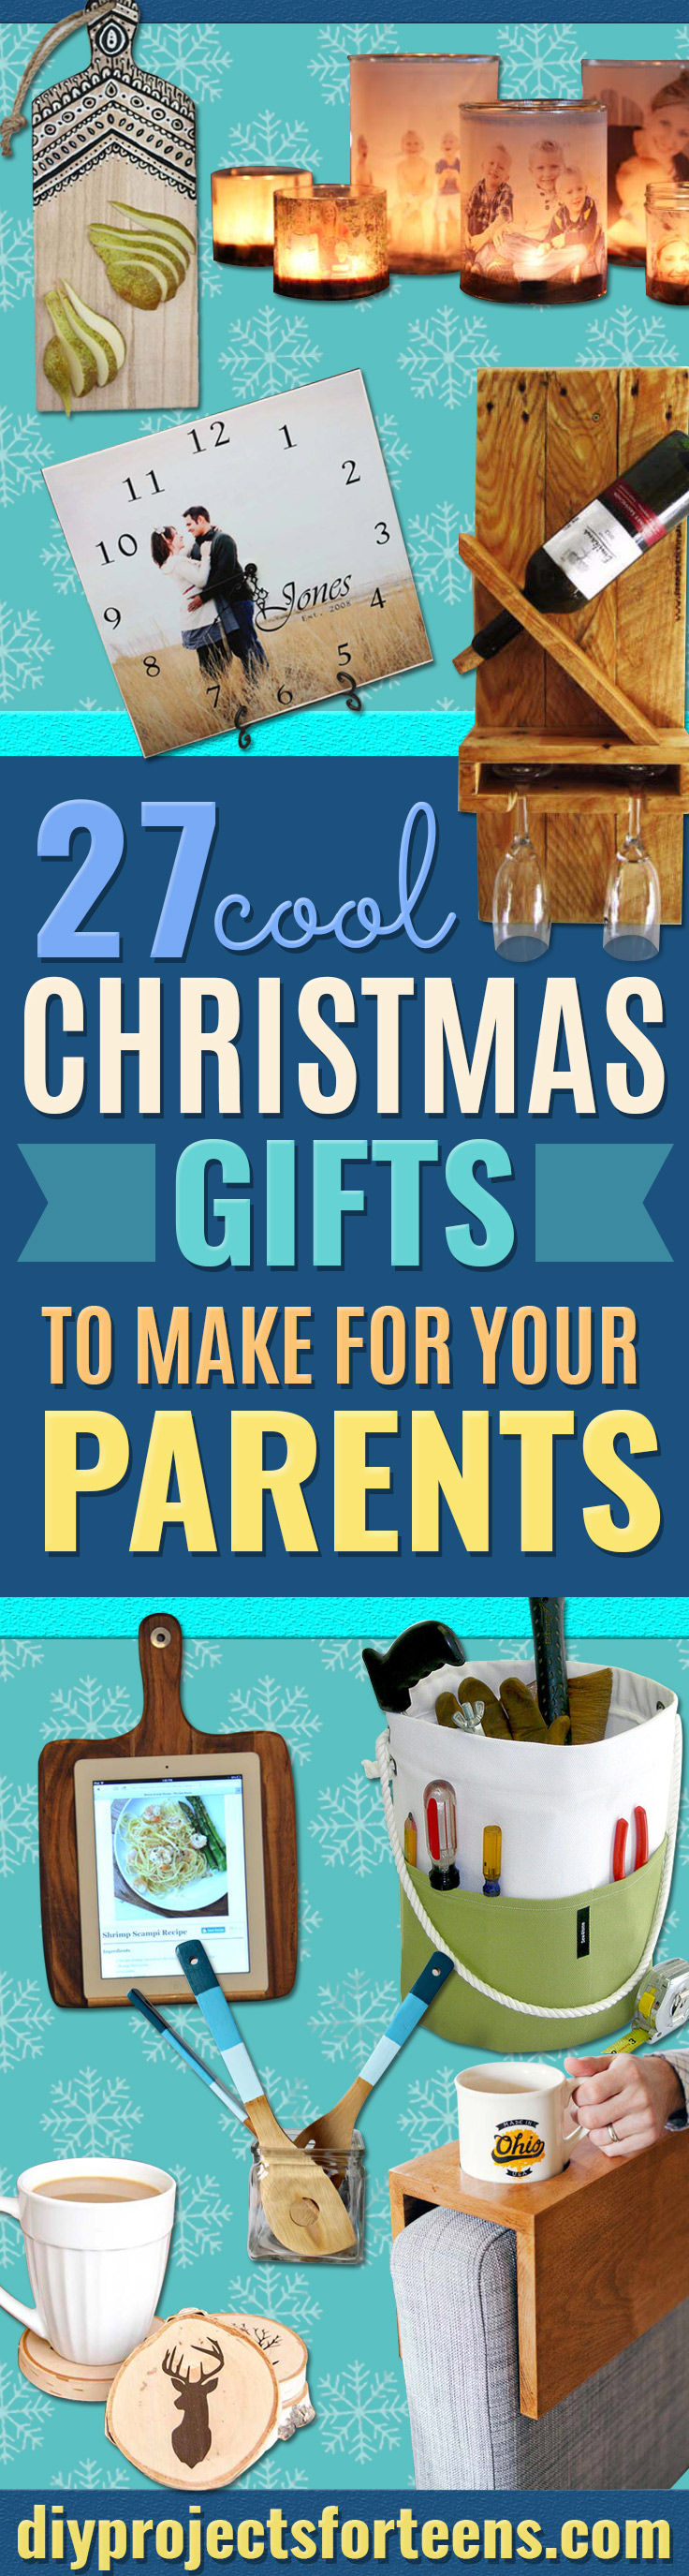 Cool christmas gifts to make for your parents Christmas ideas for your mom